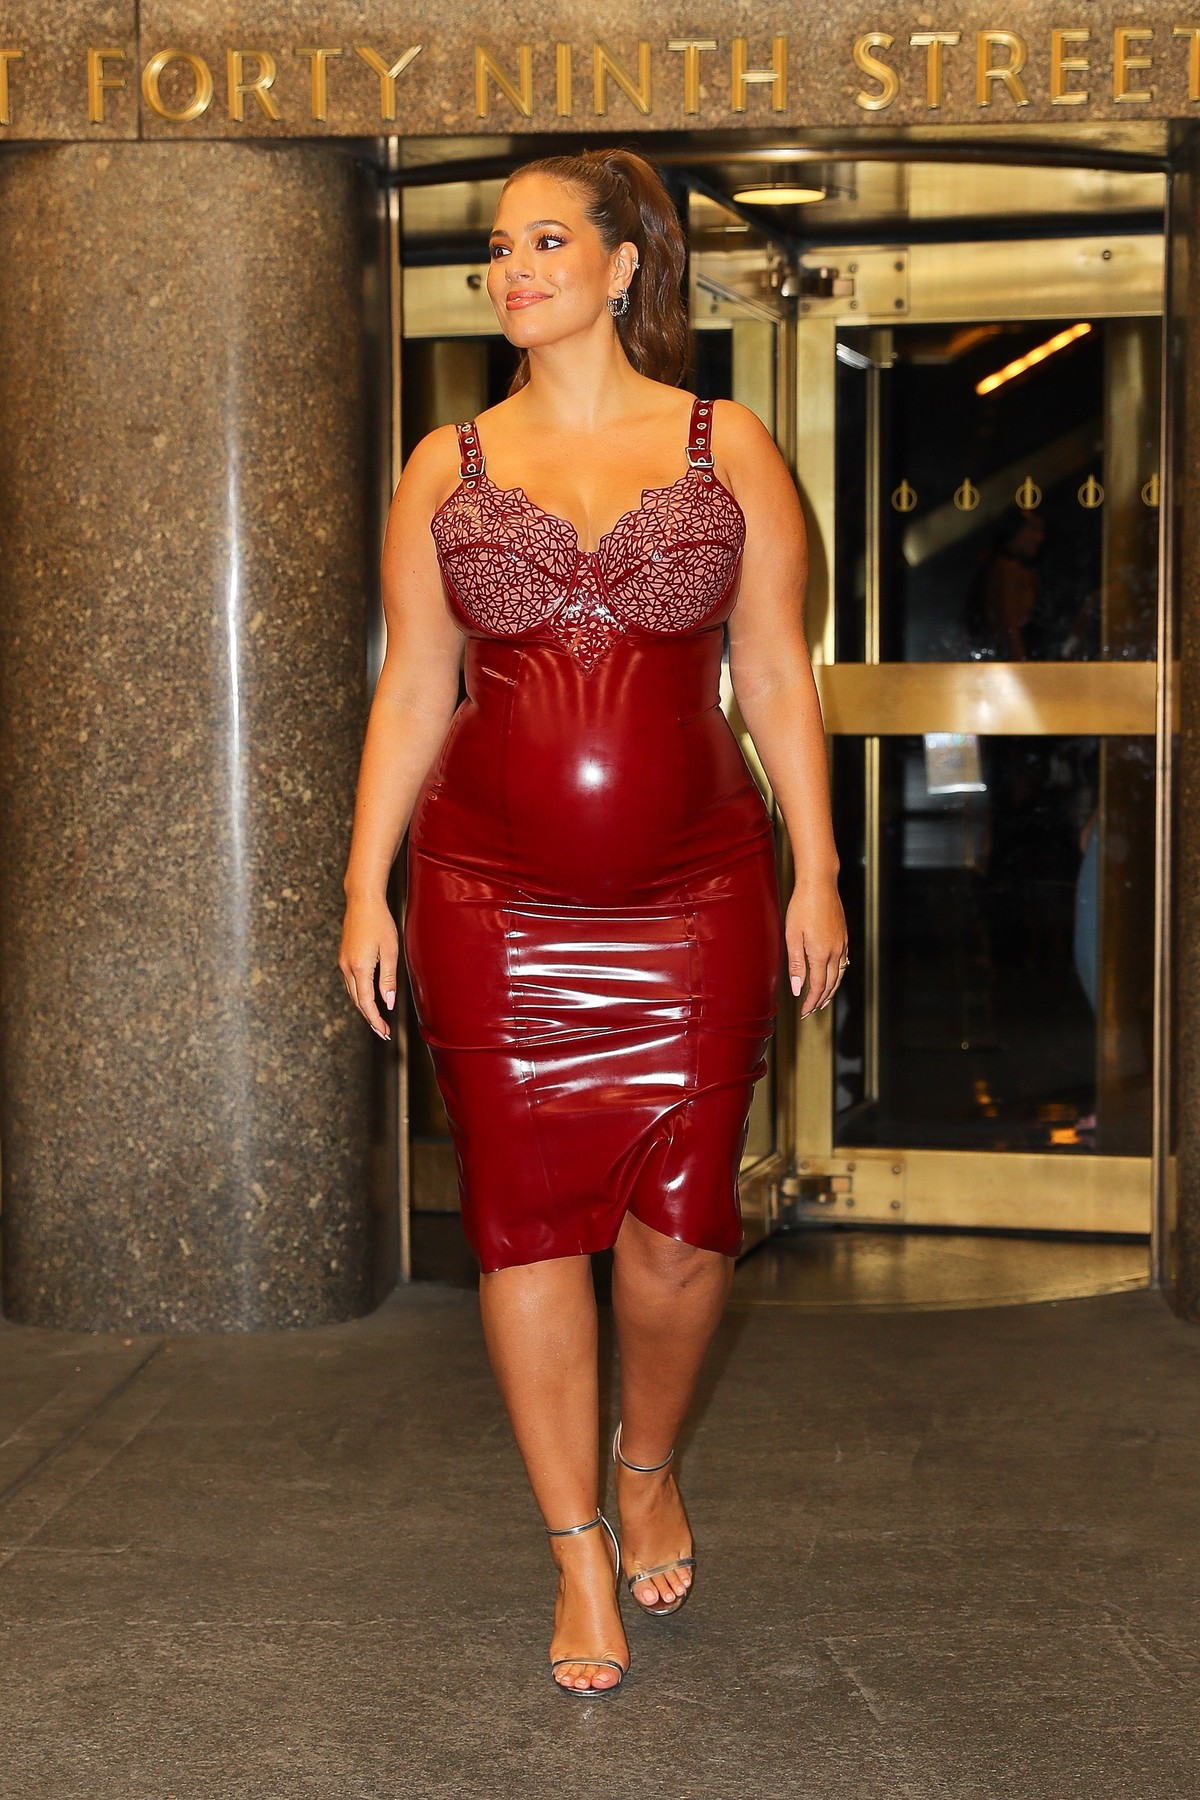 Ashley Graham seen leaving The Rainbow Room after attending The Daily Media Awards in NYC. 05 Sep 2019, Image: 469381885, License: Rights-managed, Restrictions: World Rights, Model Release: no, Credit line: Profimedia, Mega Agency